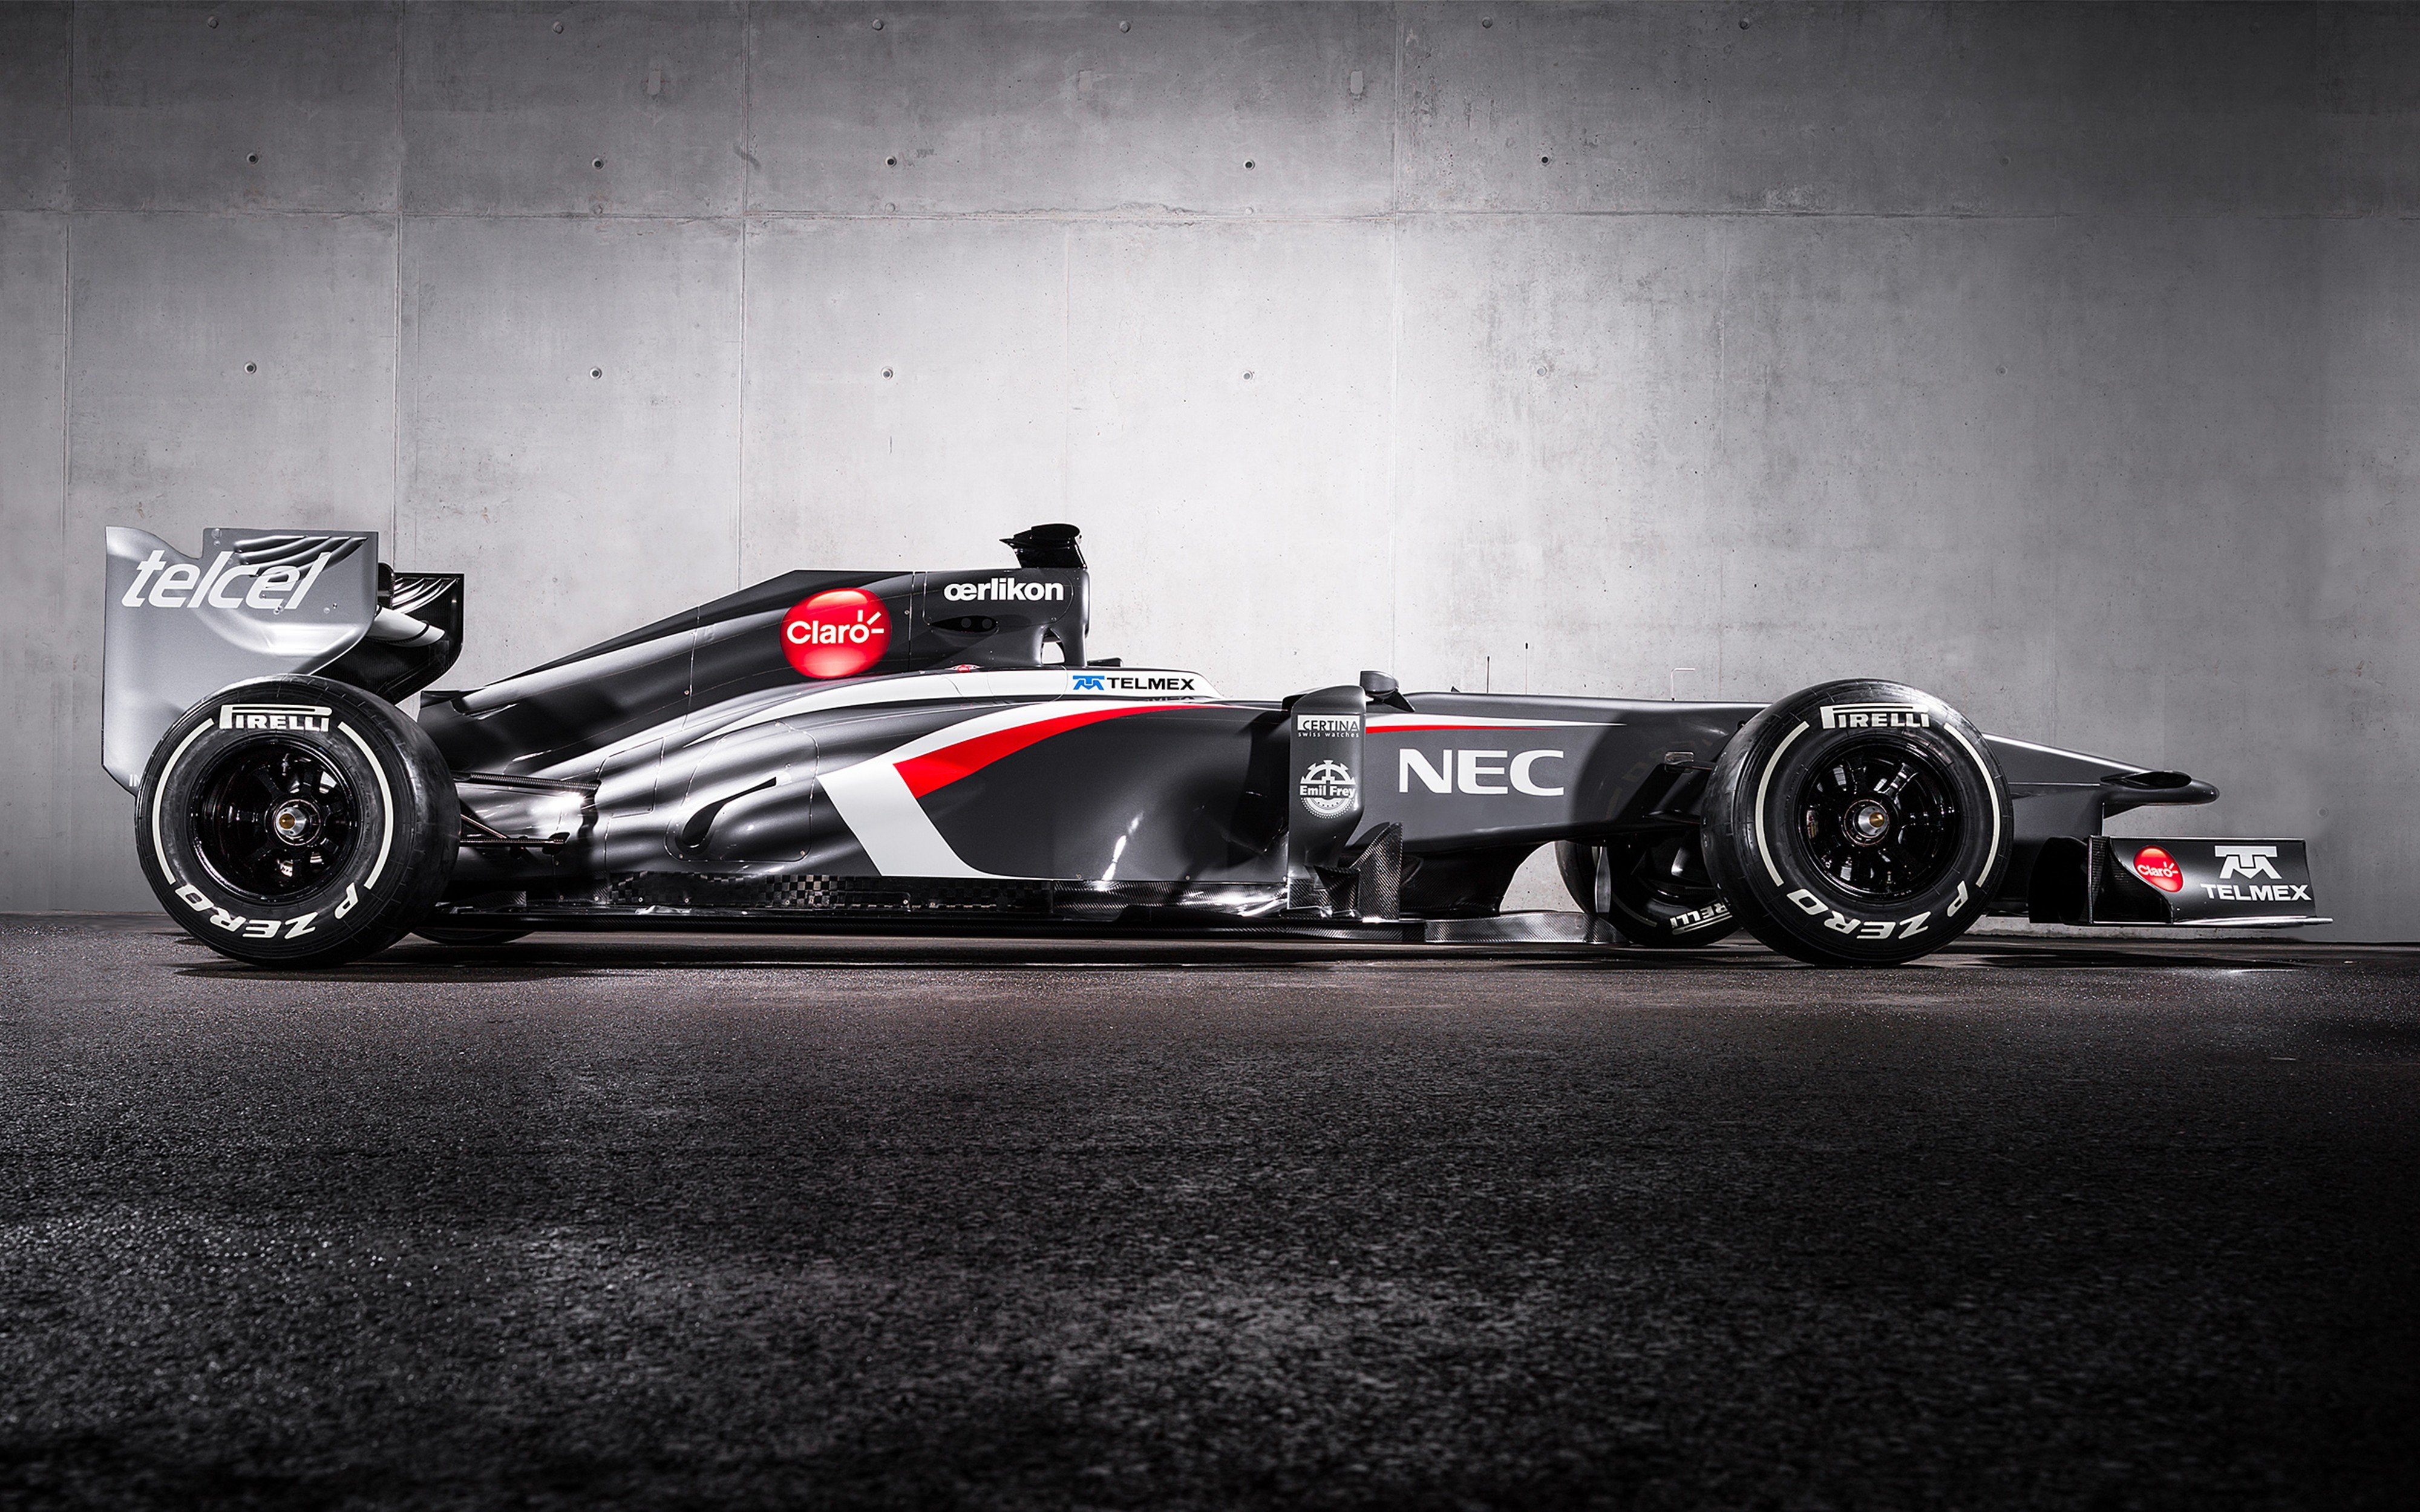 F1 Race Cars Wallpapers Wallpaper Cave